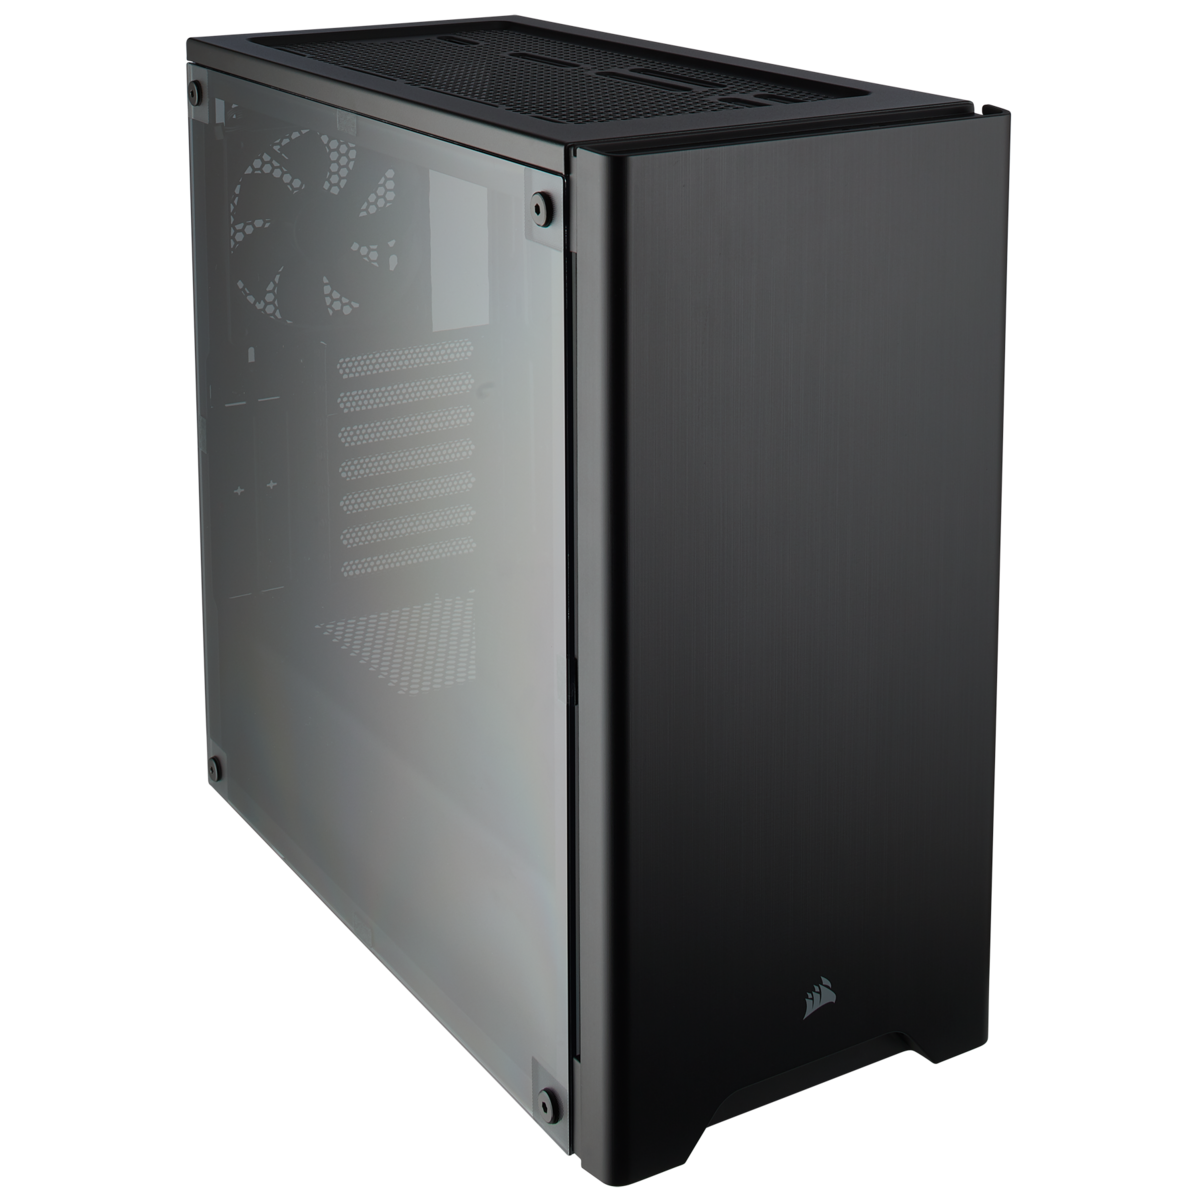 CARBIDE 275R BLACK - CORSAIR